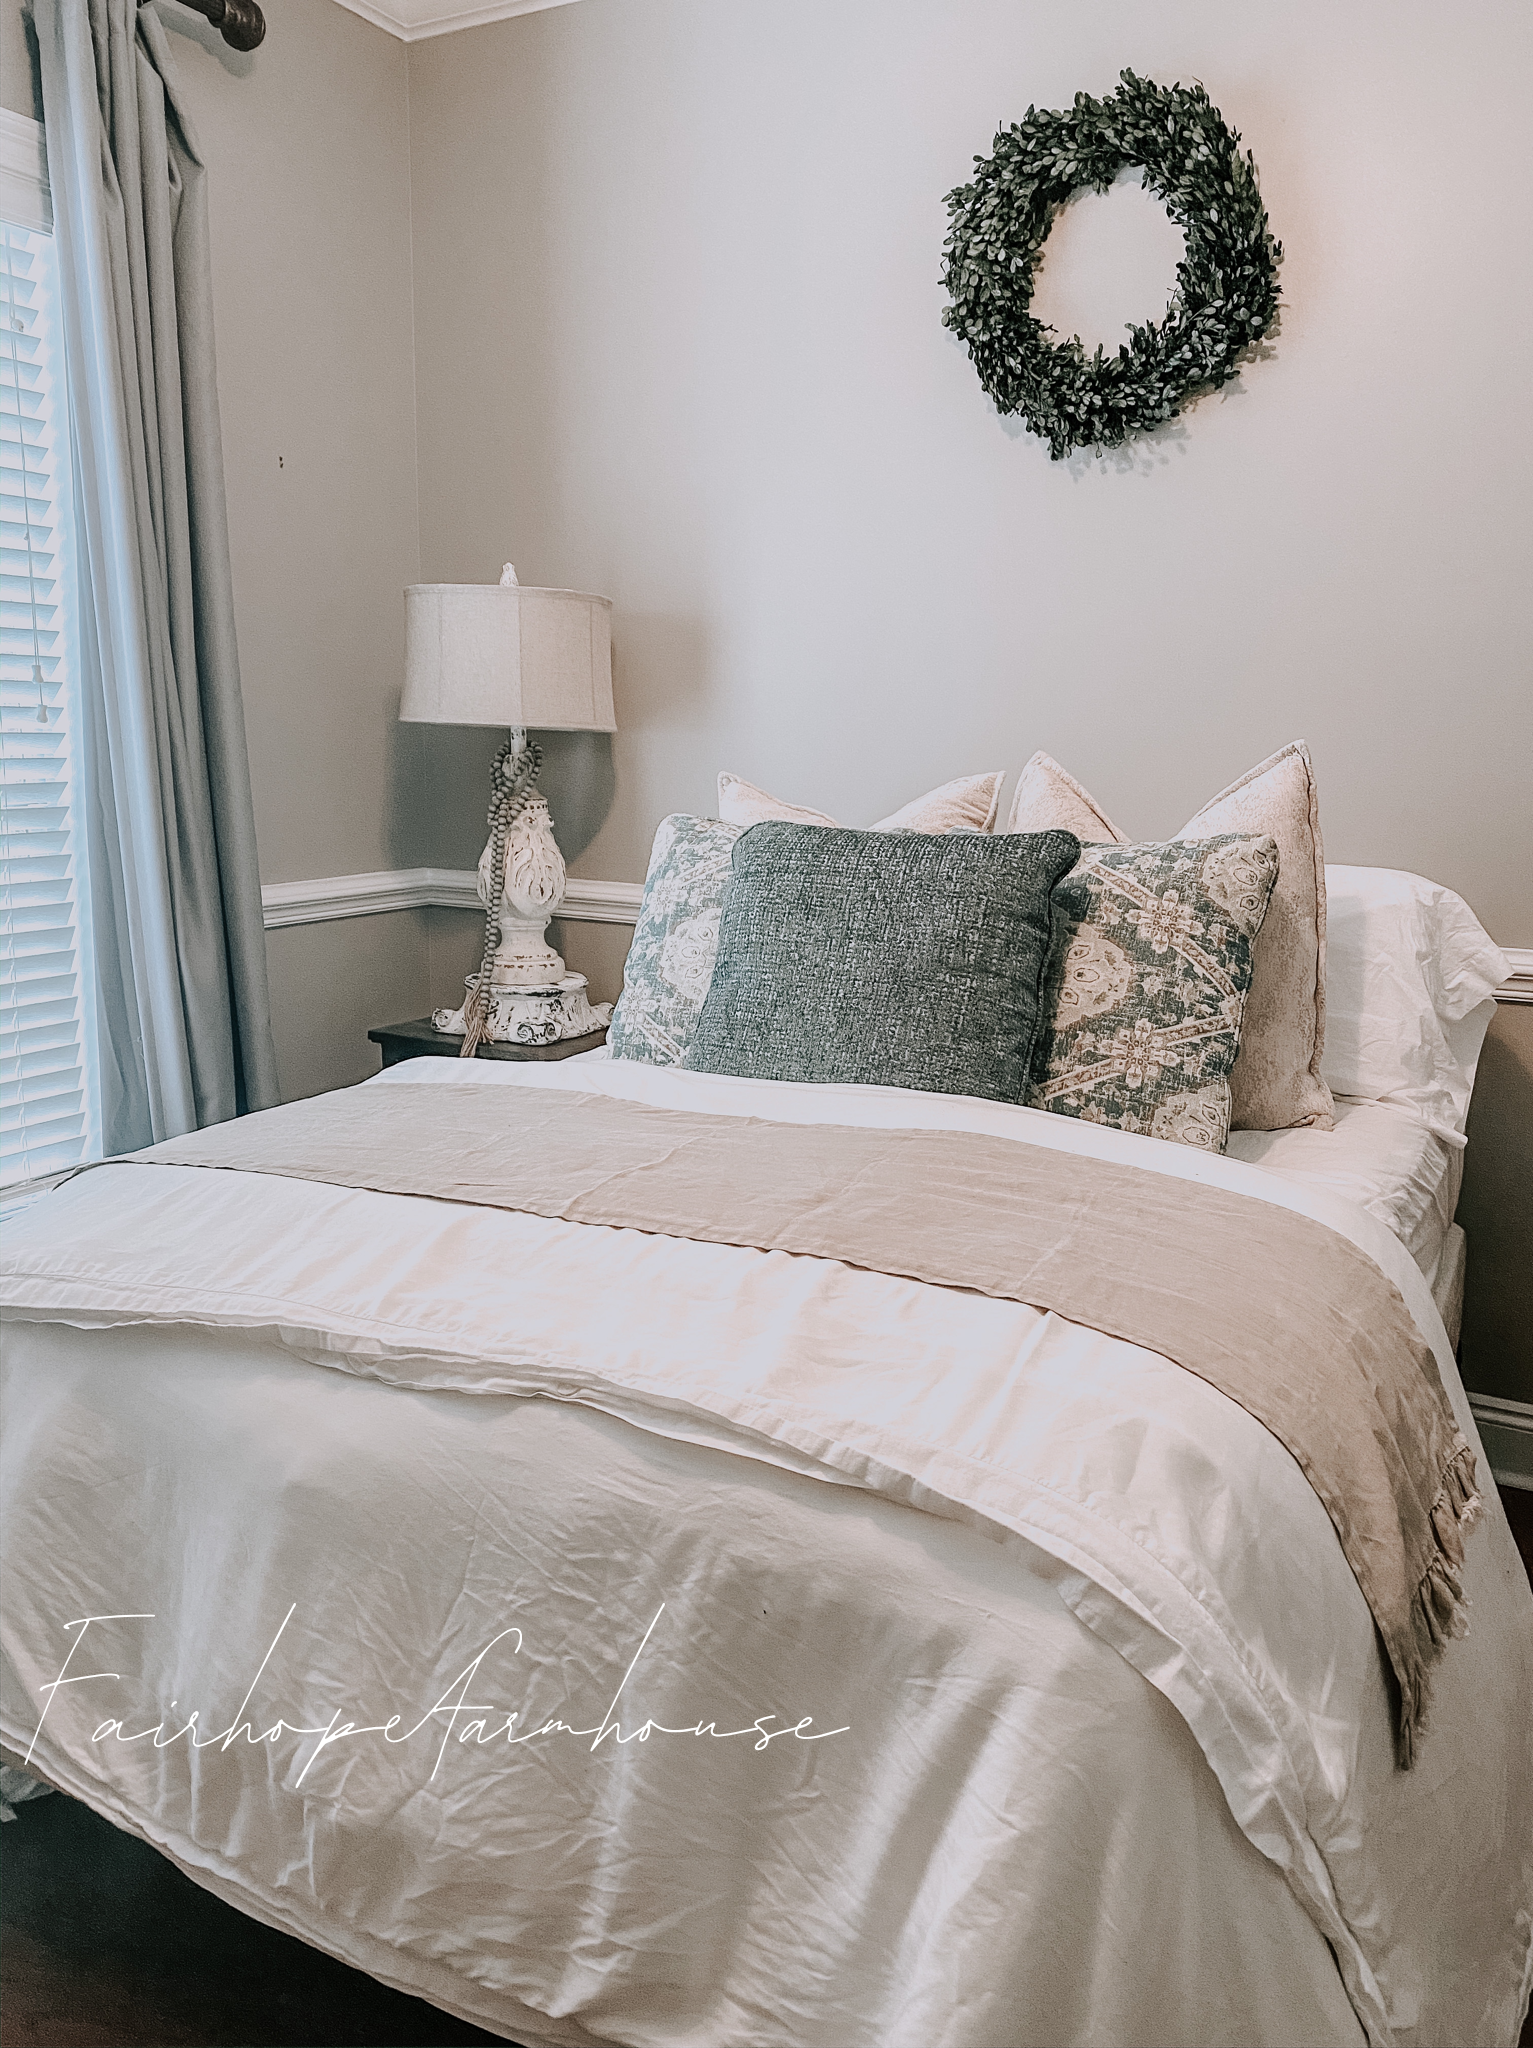 Guest room decor in 2020 Guest room decor, Pottery barn